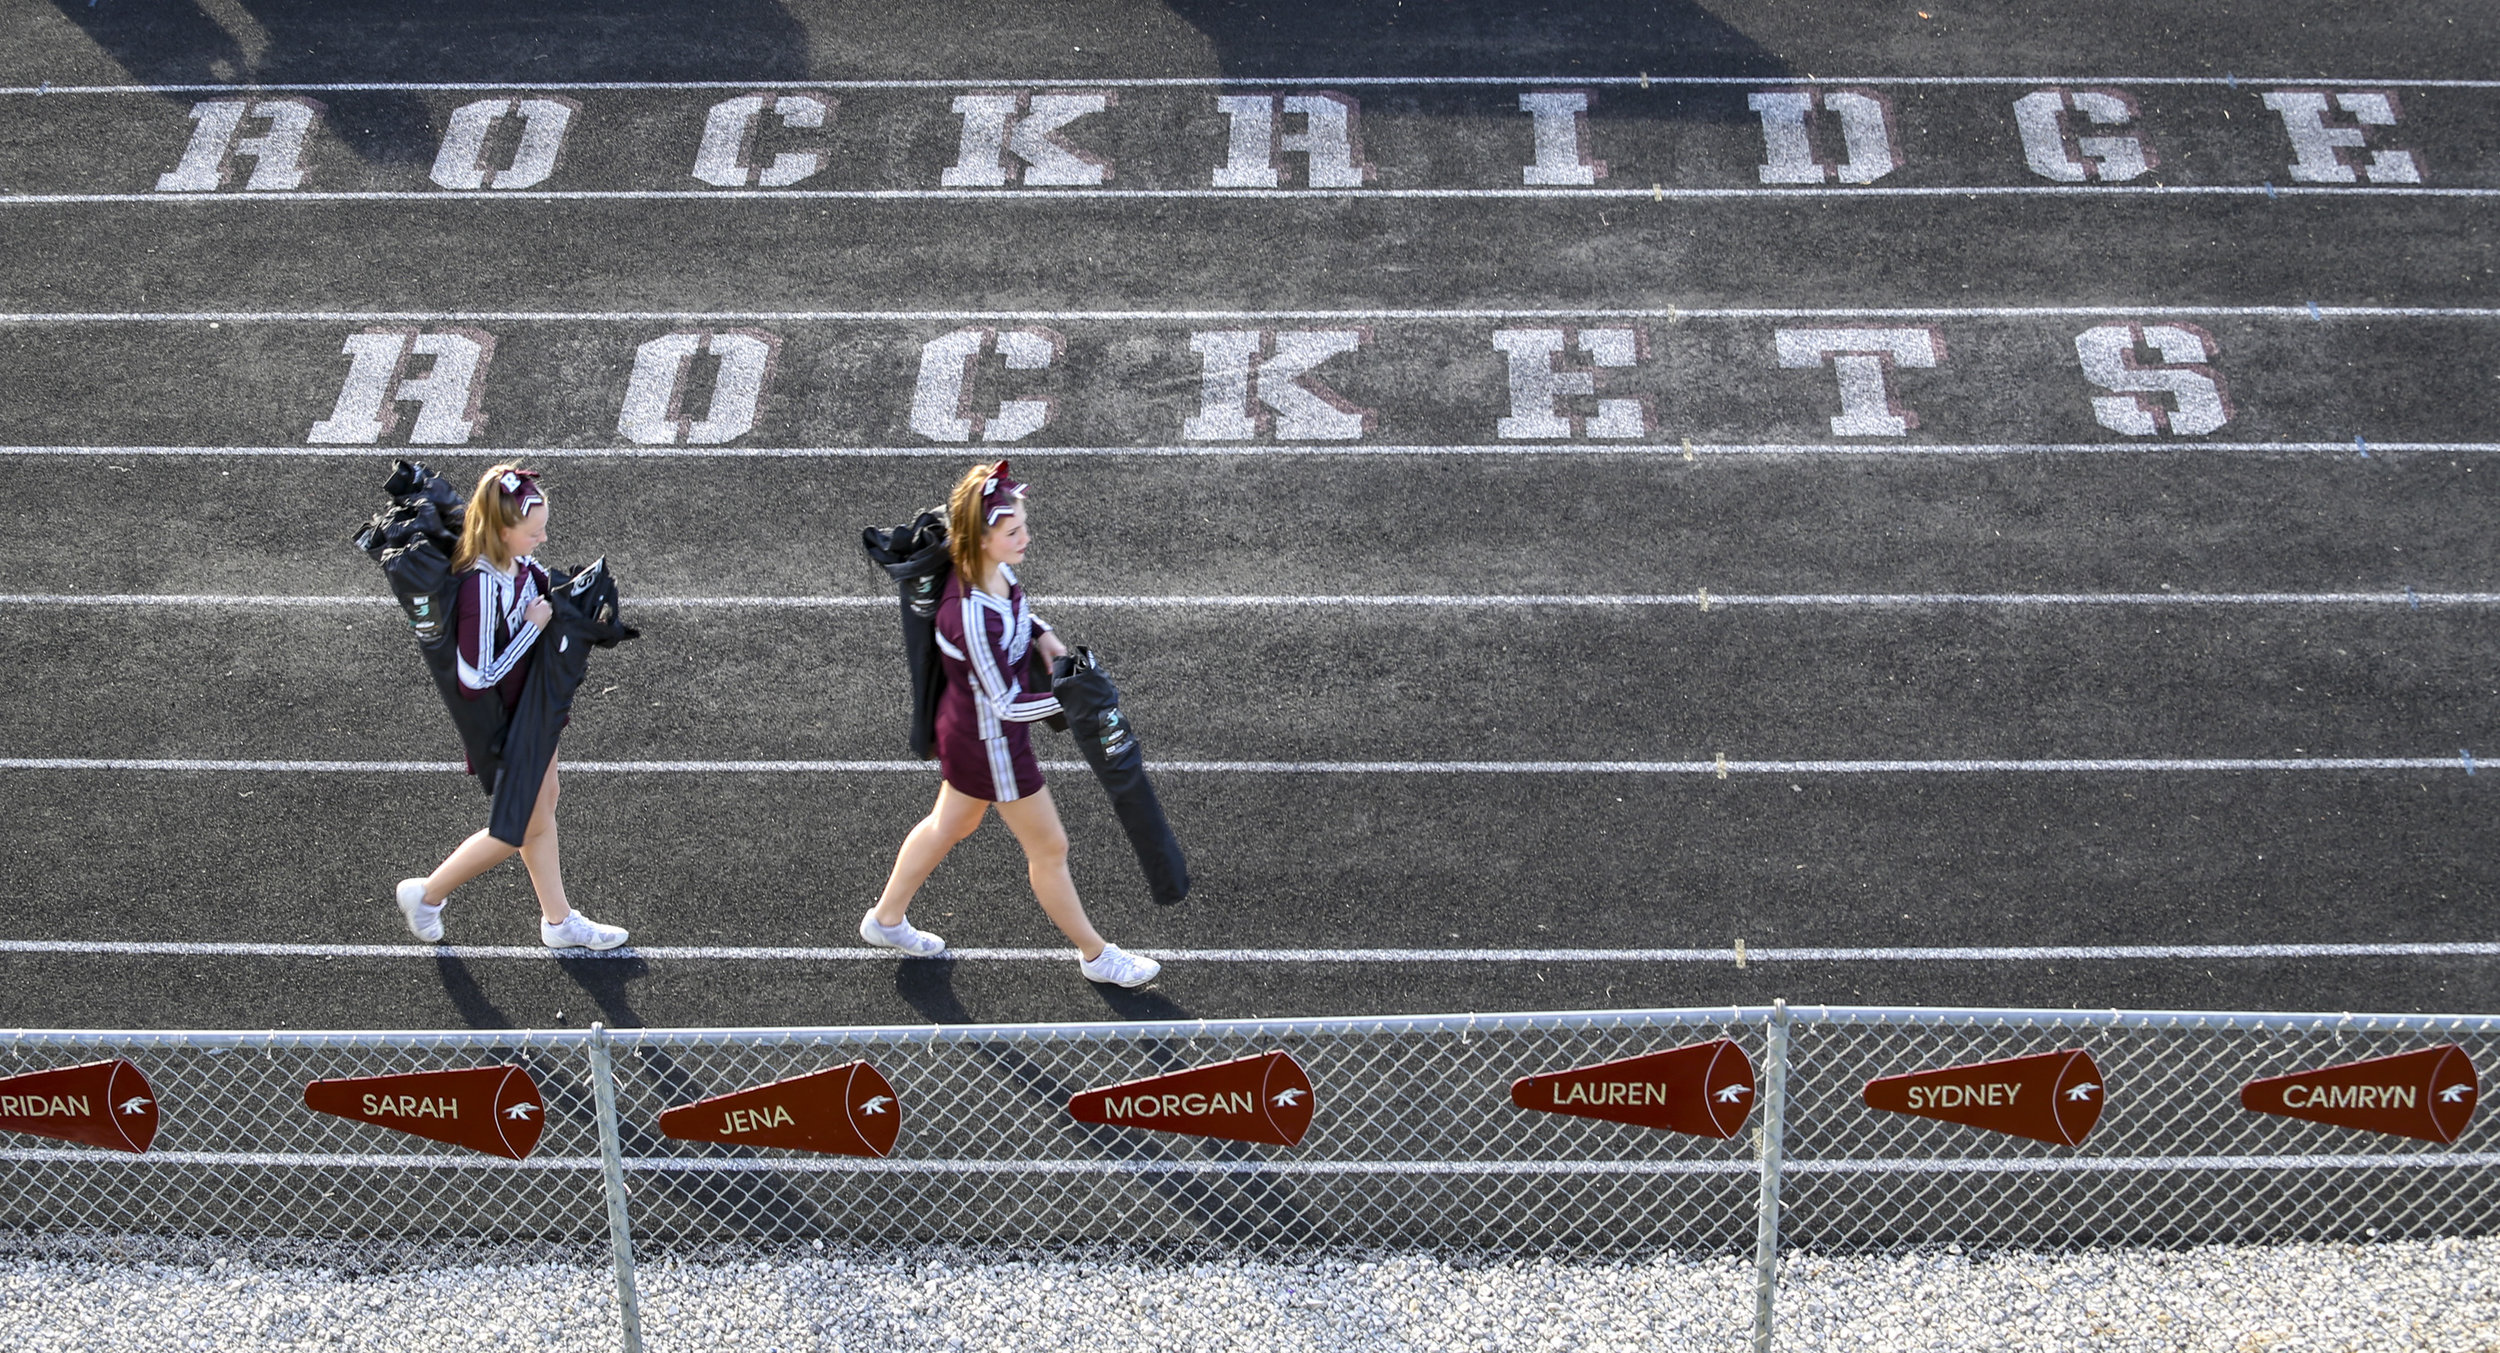 Rockridge cheerleaders take their folding chairs out to the side of the football field before the game at Rockridge High School in Edginton, Friday, October 20, 2017.